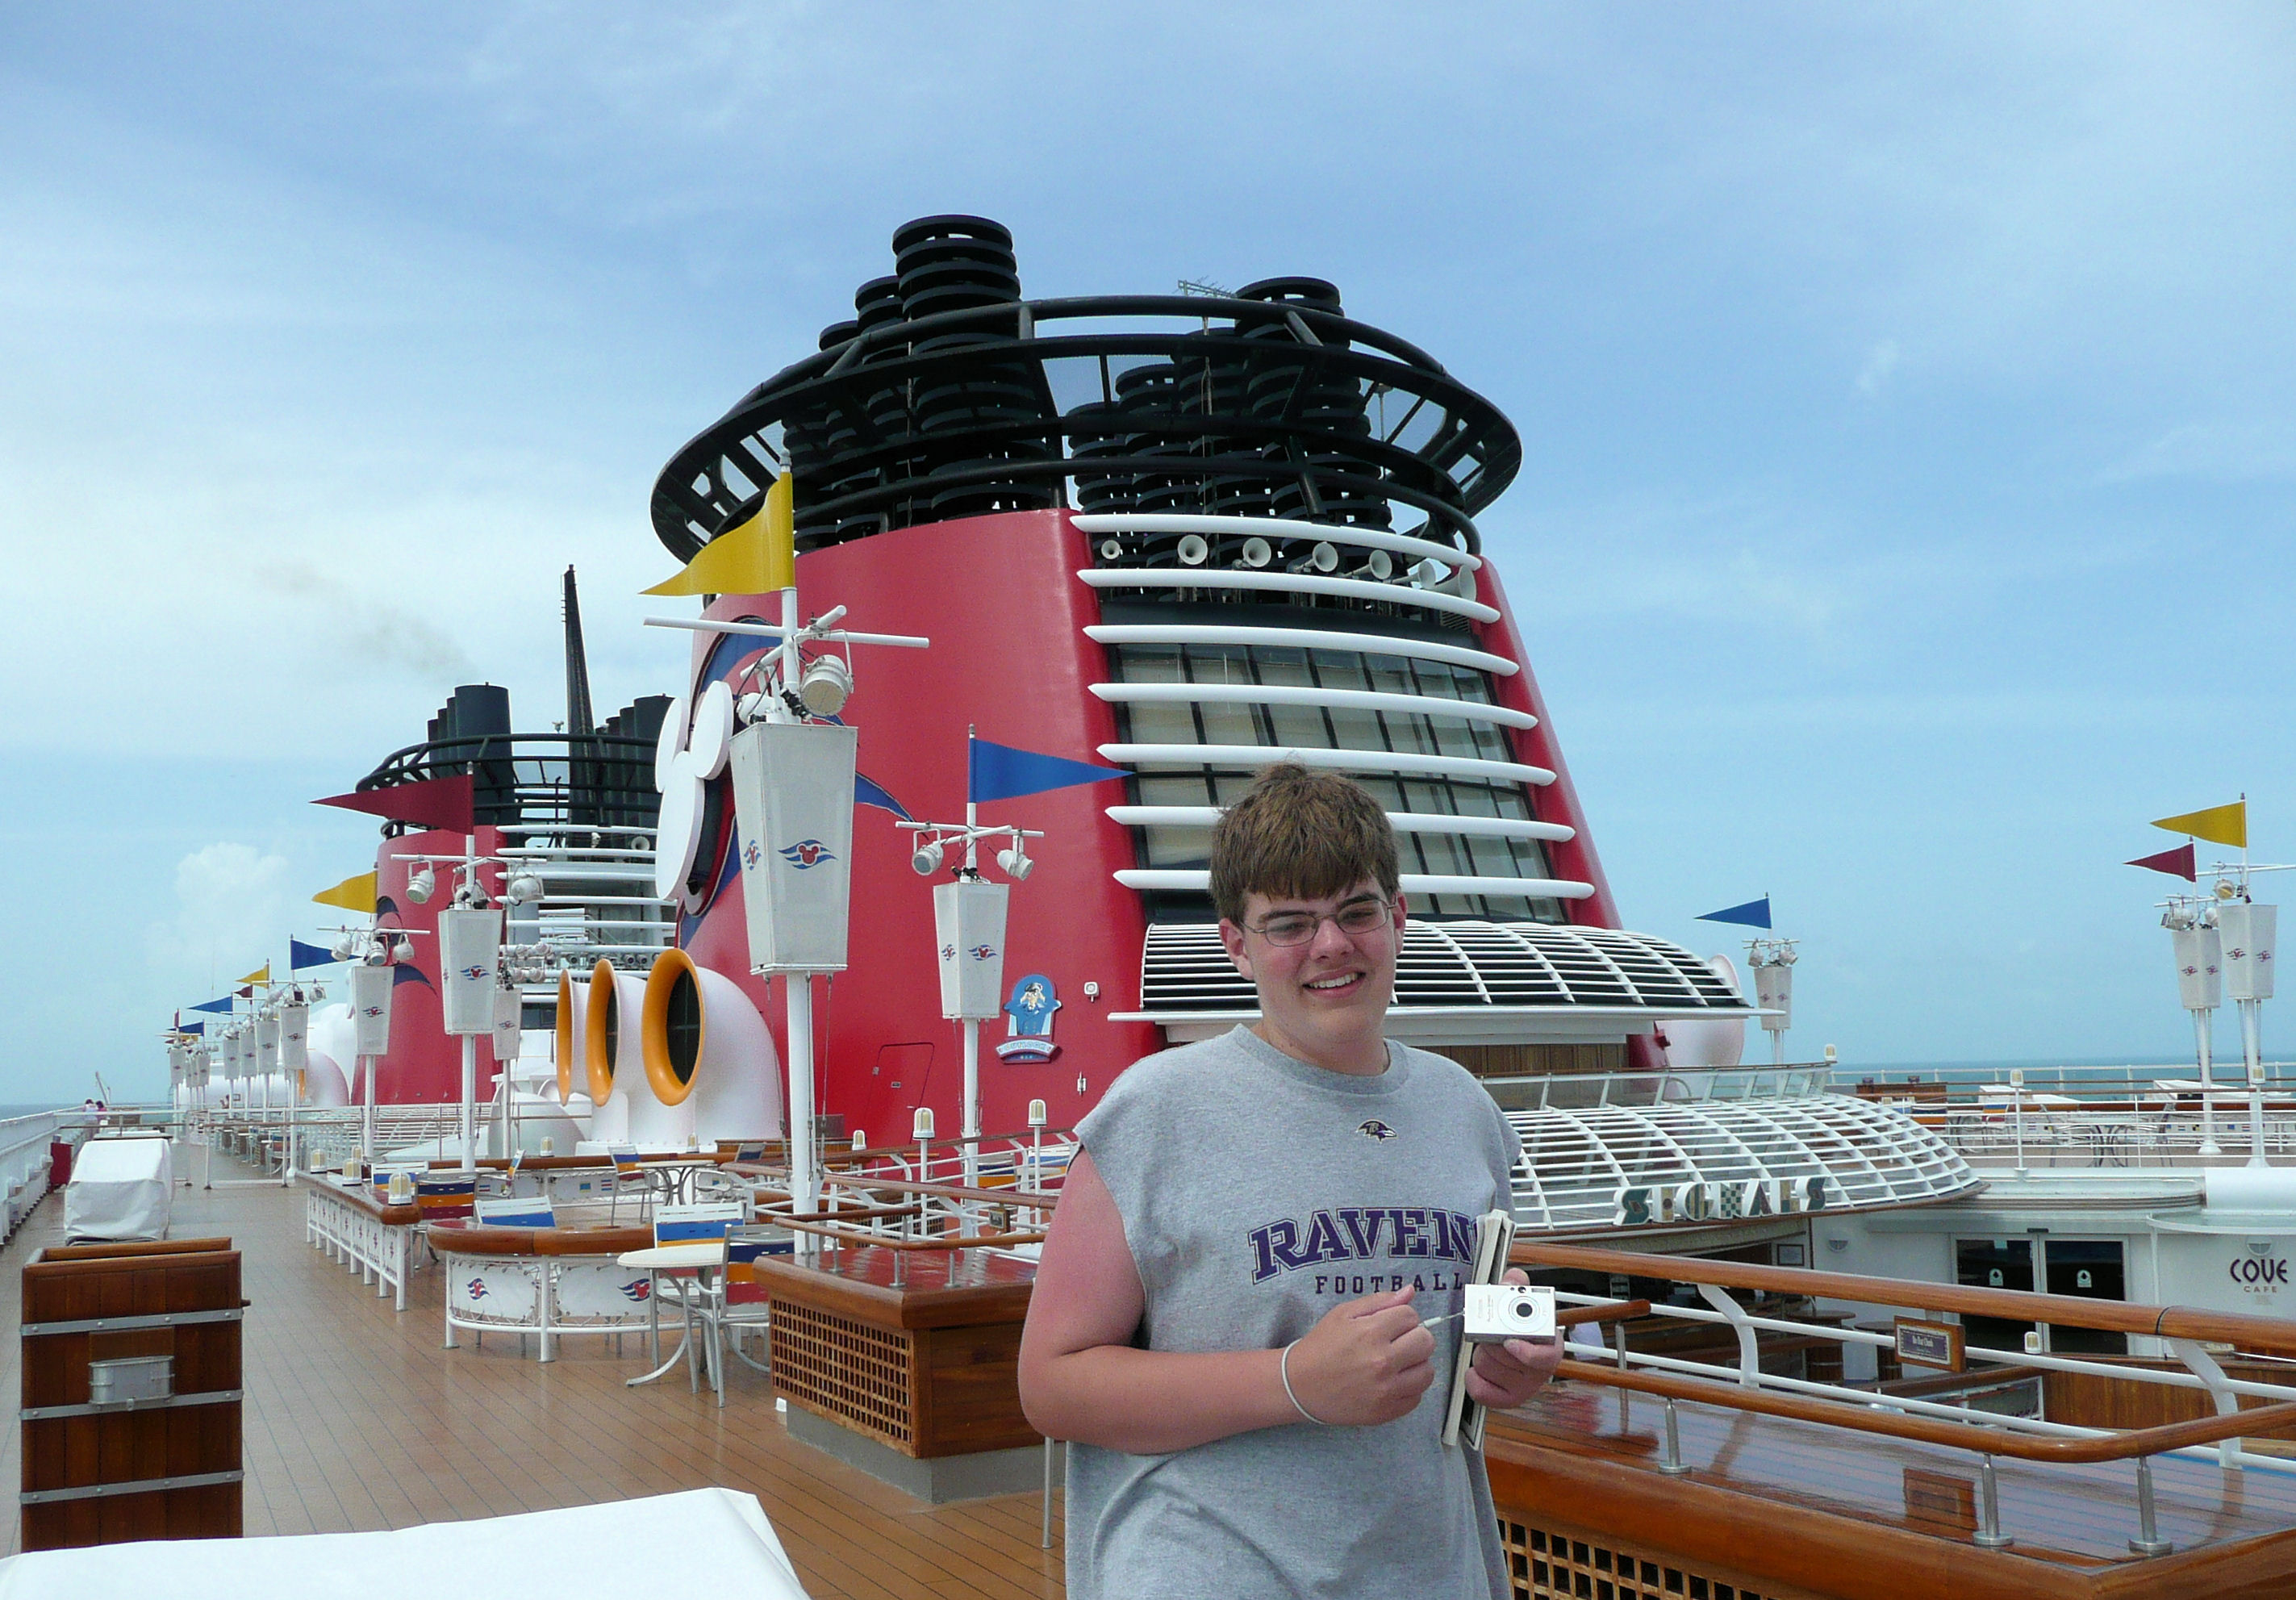 On the top deck enjoying the view on the Disney Cruise Line.